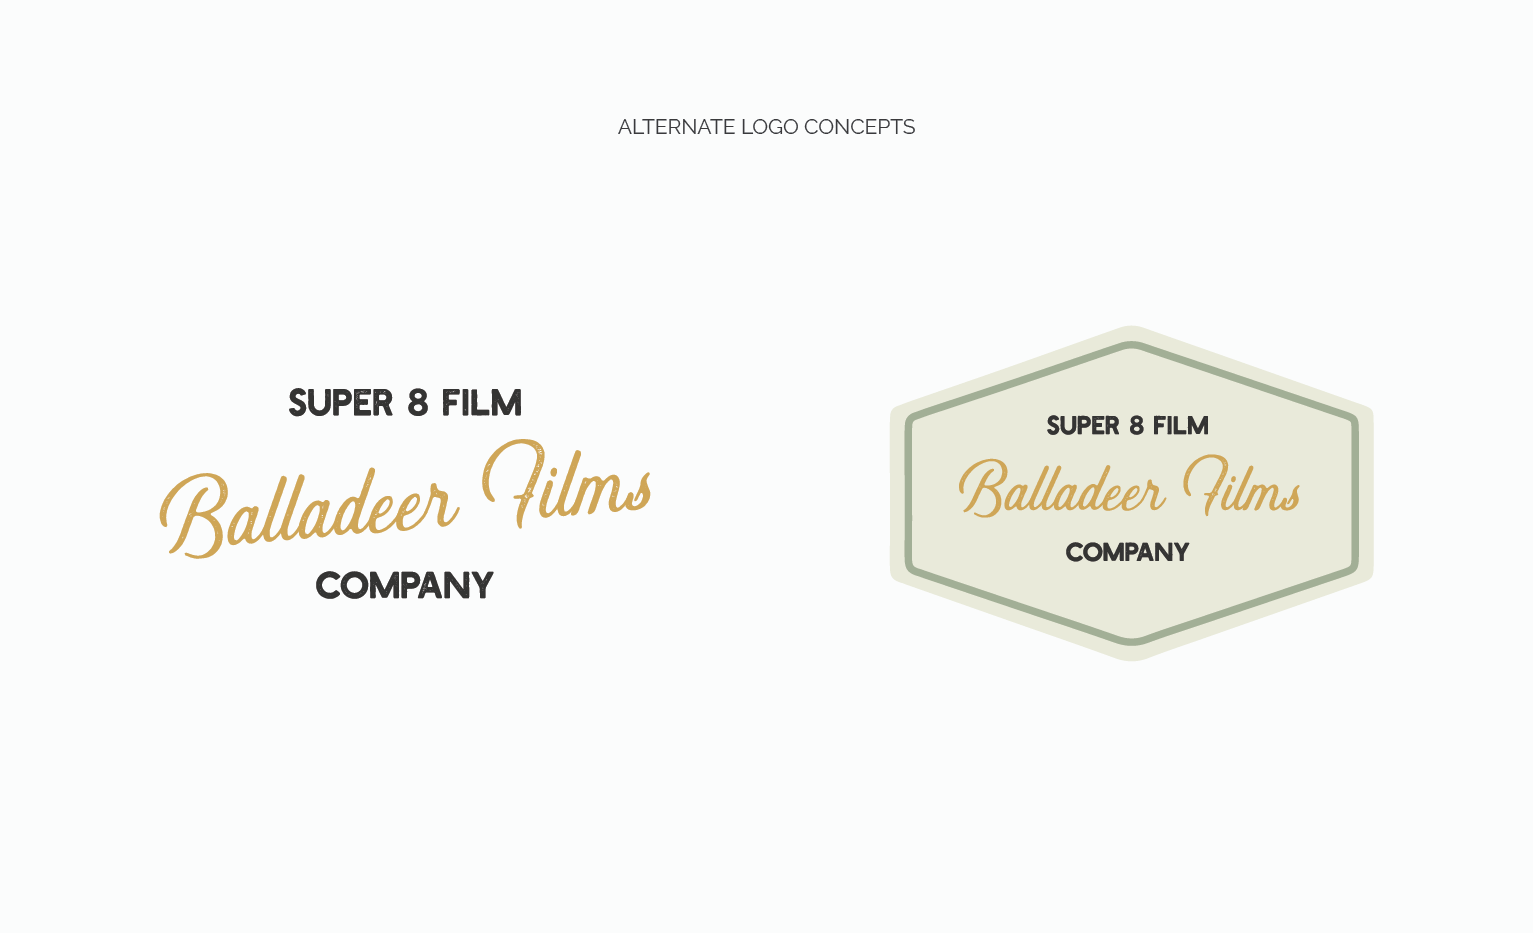 Alternate Logo Concepts for Balladeer Films by Jordan Prindle | Designs